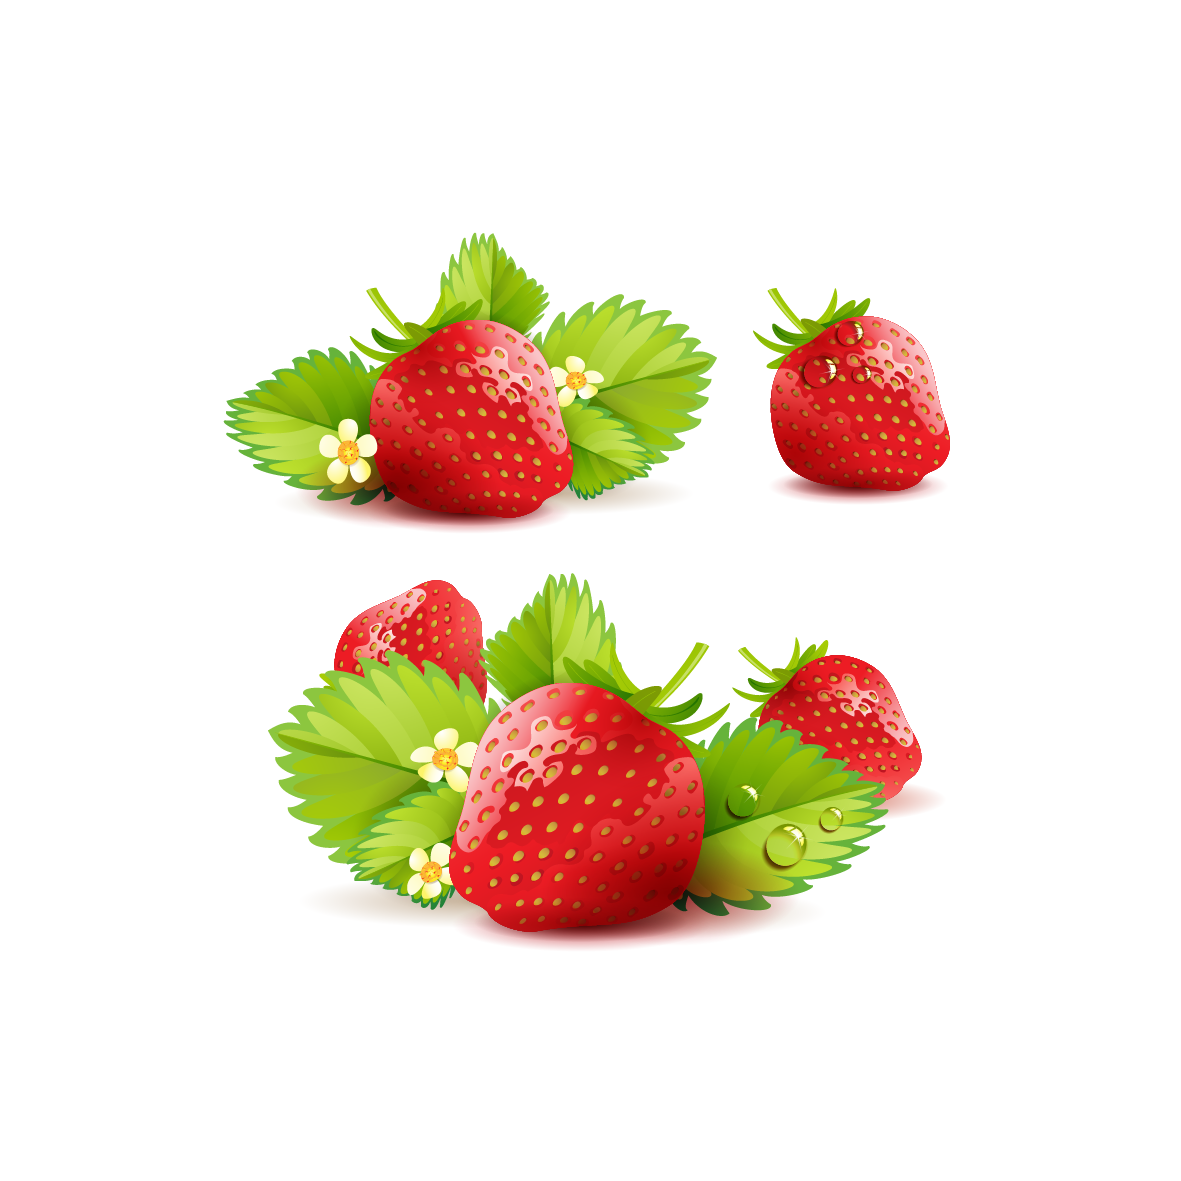 kisspng-strawberry-pie-stock-photography-illustration-creative-vector-material-strawberry-5aad859c481d29.4798511815213213722954